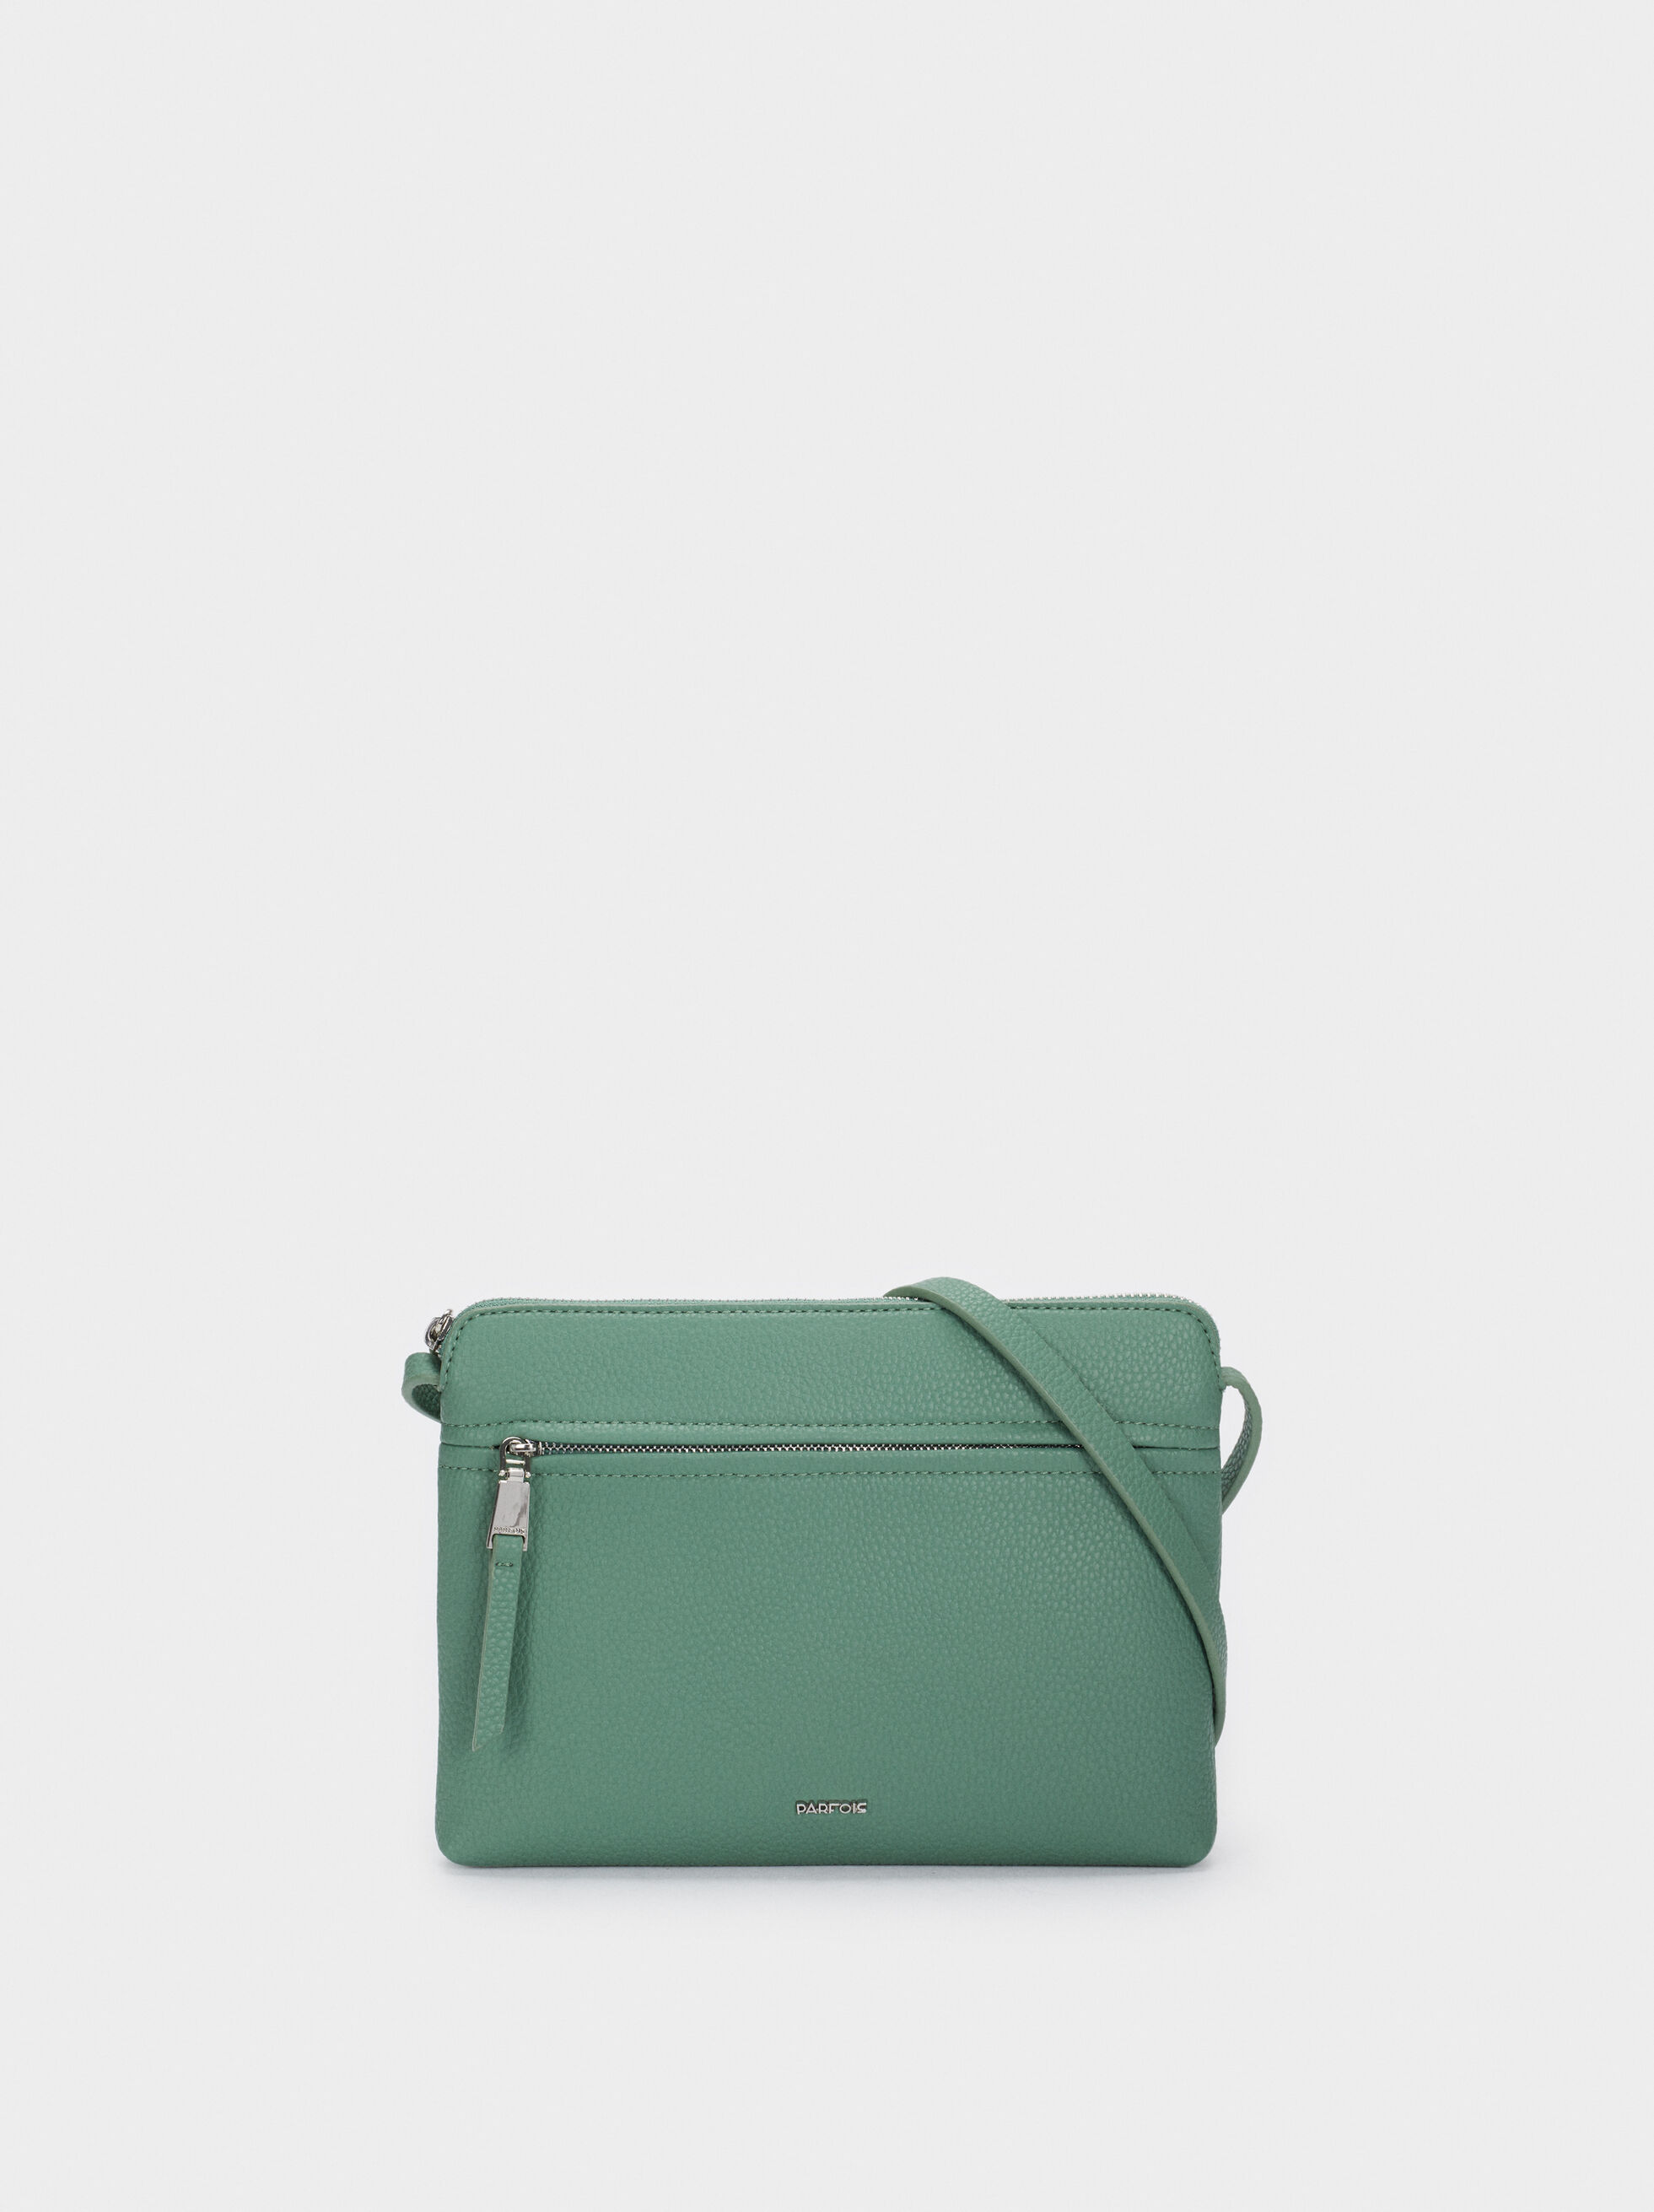 Crossbody Bag With Outer Pocket, Green, hi-res